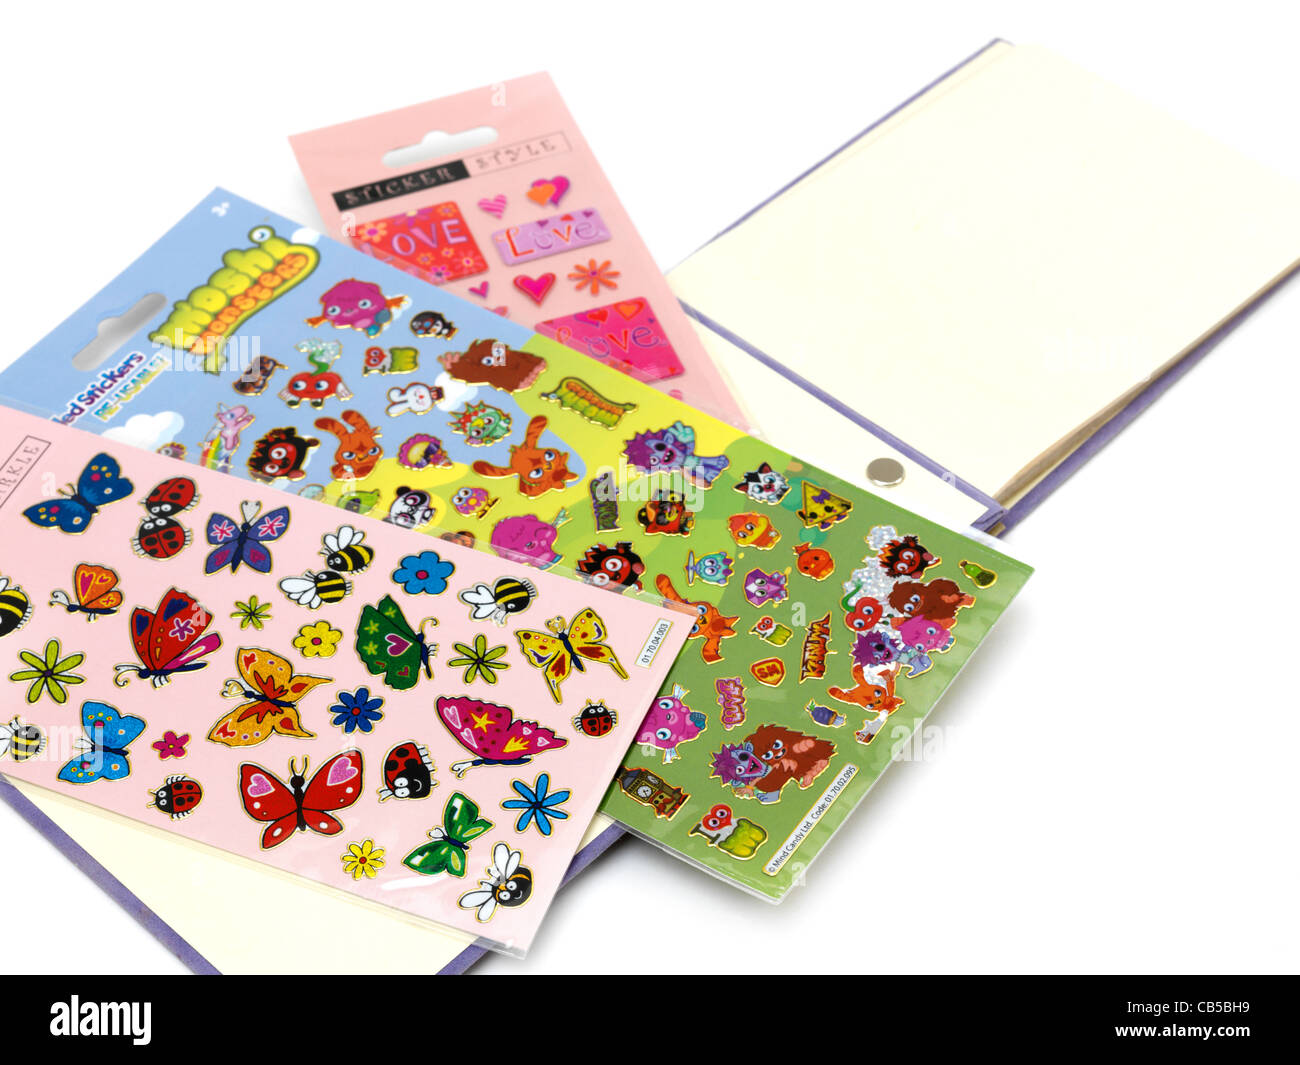 Butterflies, Love And Moshi Monsters Stickers And Sticker Album - Stock Image